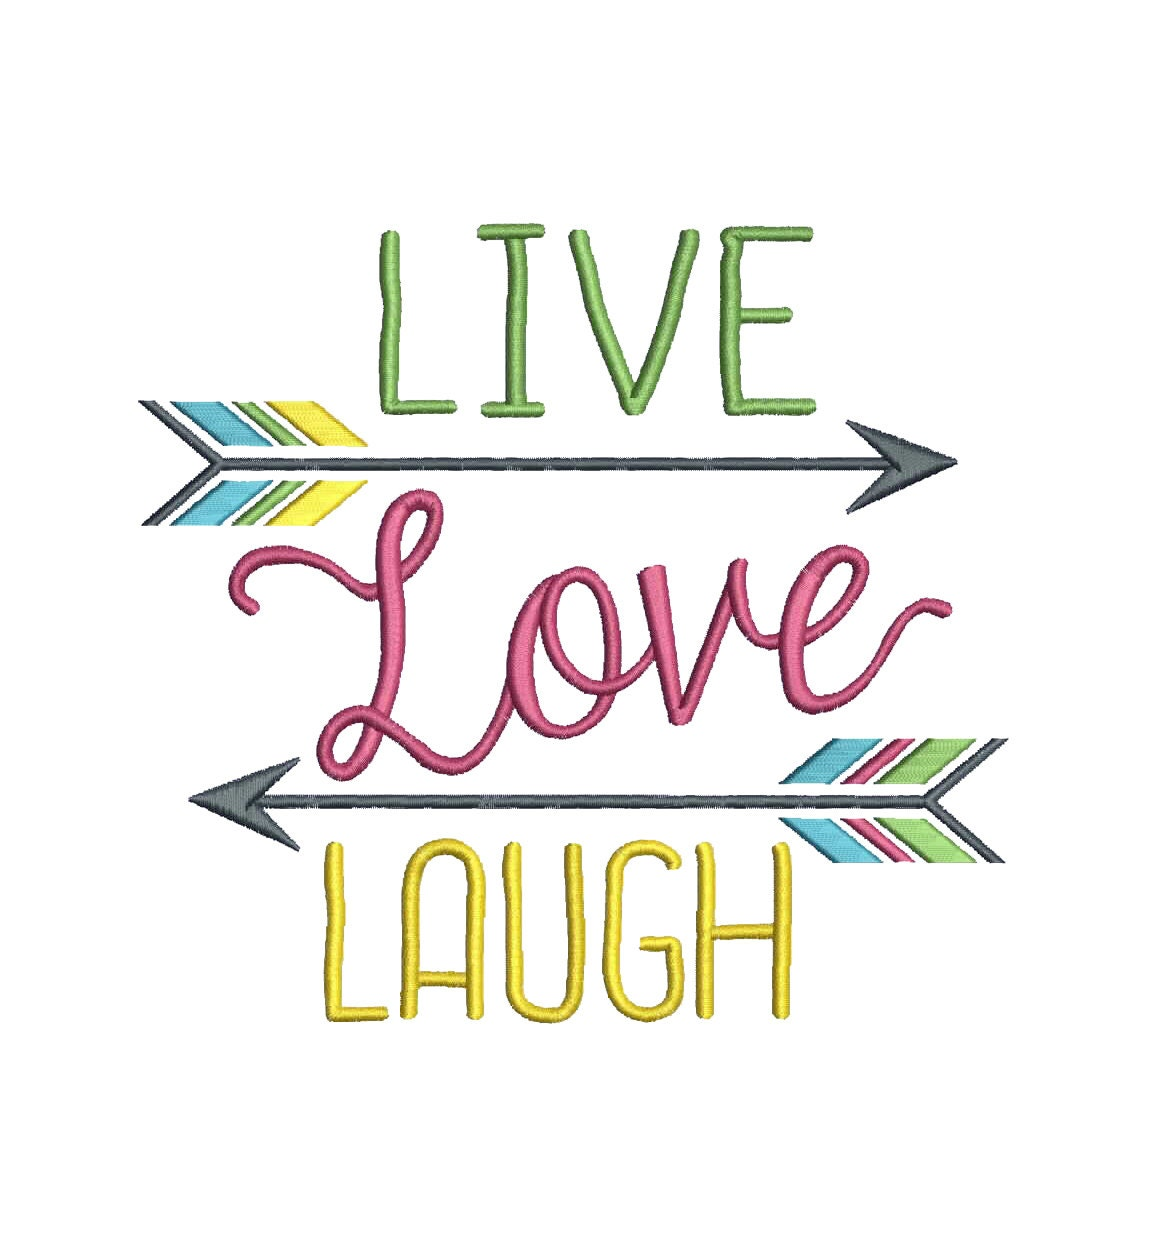 7 w large live love laugh with arrows embroidery design. Black Bedroom Furniture Sets. Home Design Ideas